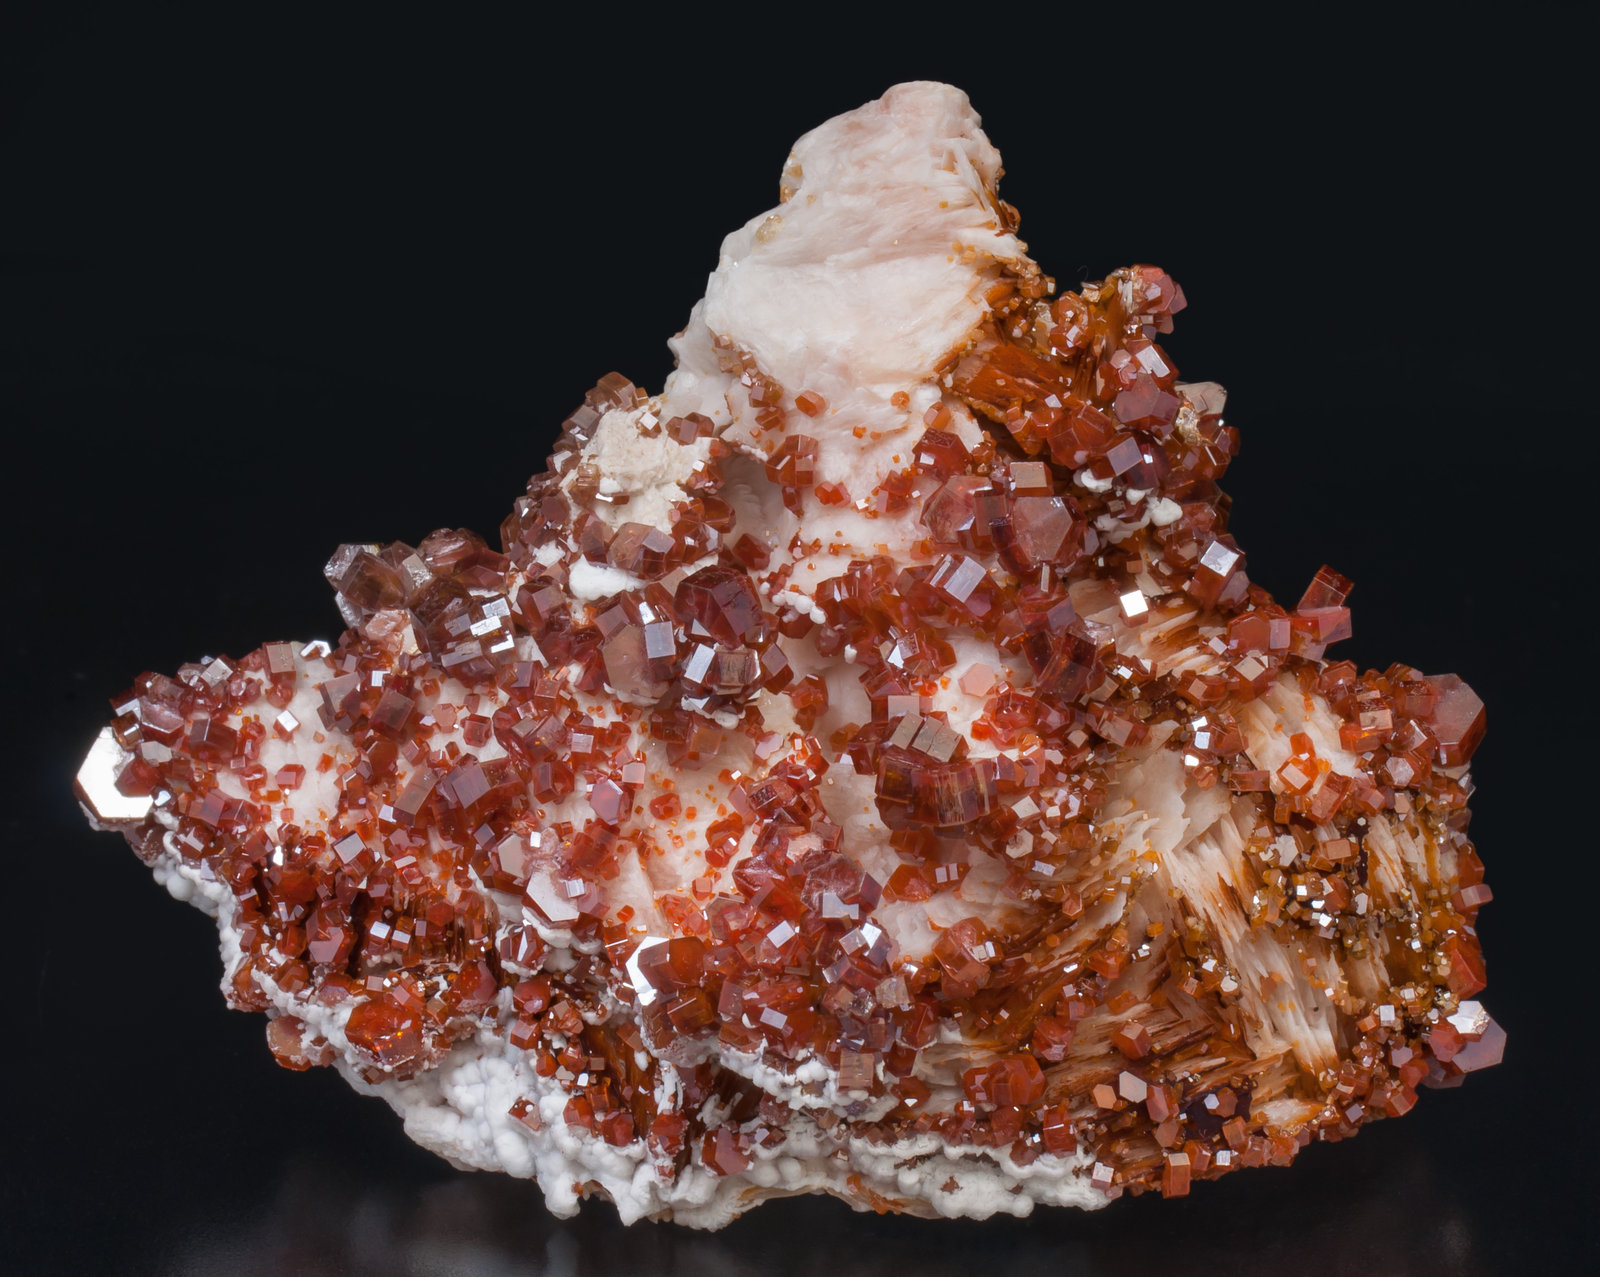 specimens/s_imagesAD5/Vanadinite-JM47AD5f.jpg